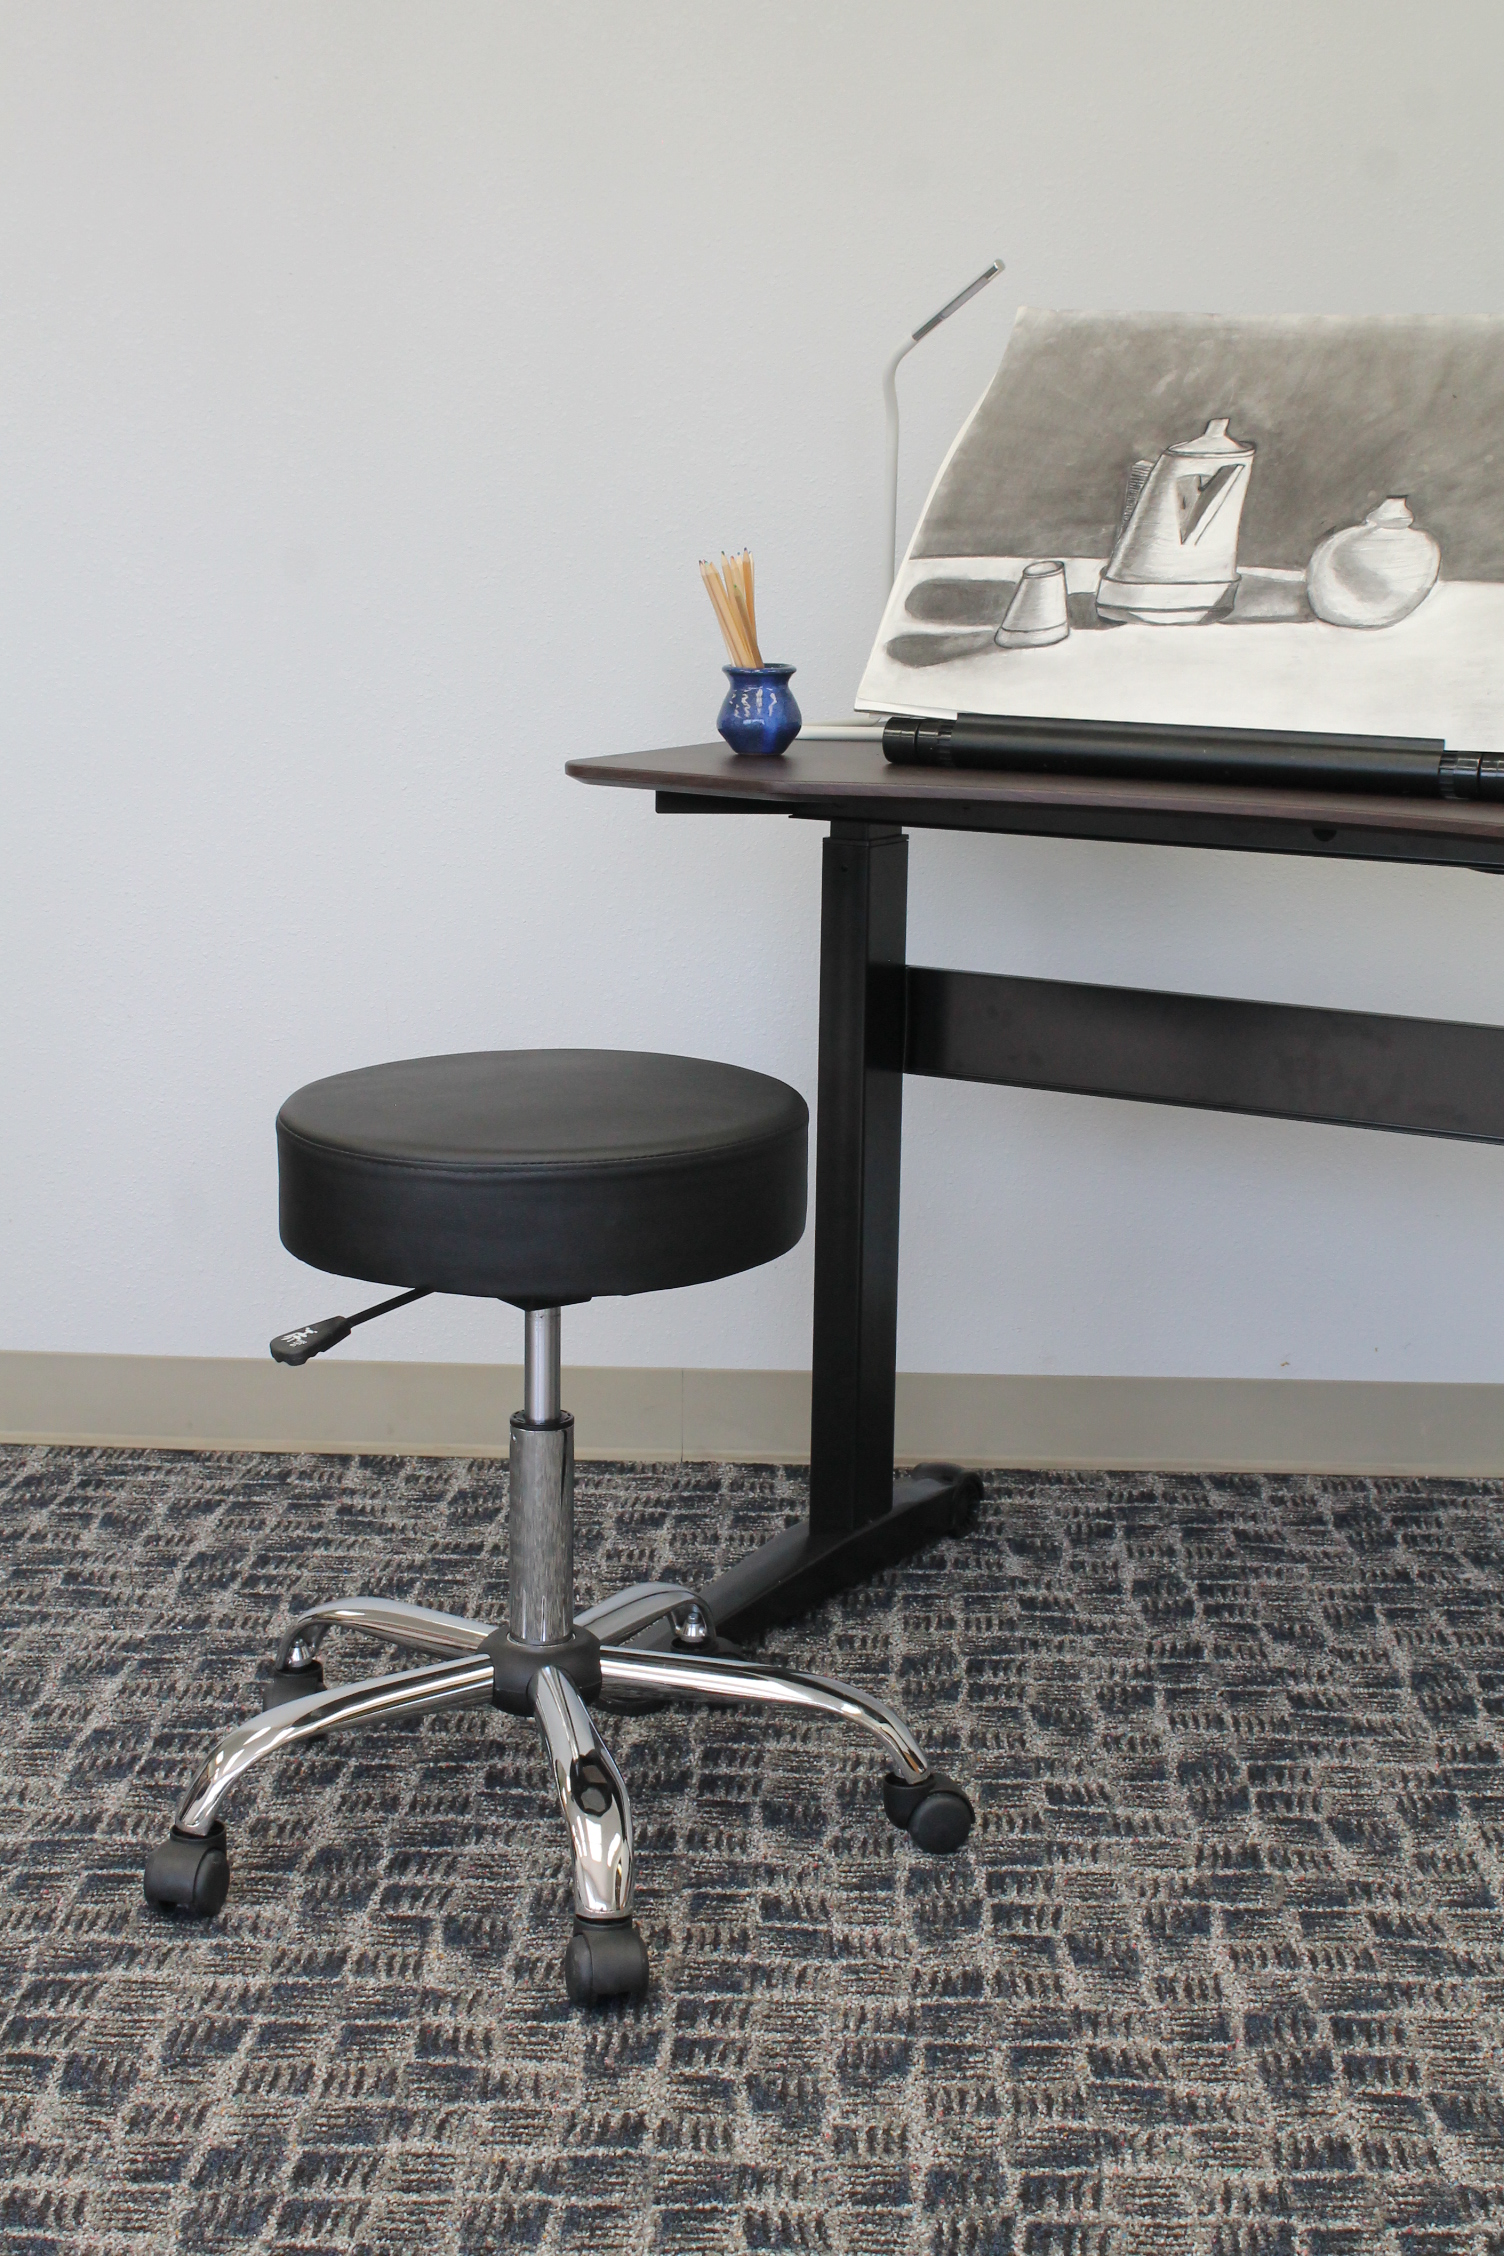 Boss Office Products Black Adjustable Upholstered Medical Stool  sc 1 st  Walmart & Boss Office Products Black Adjustable Upholstered Medical Stool ... islam-shia.org